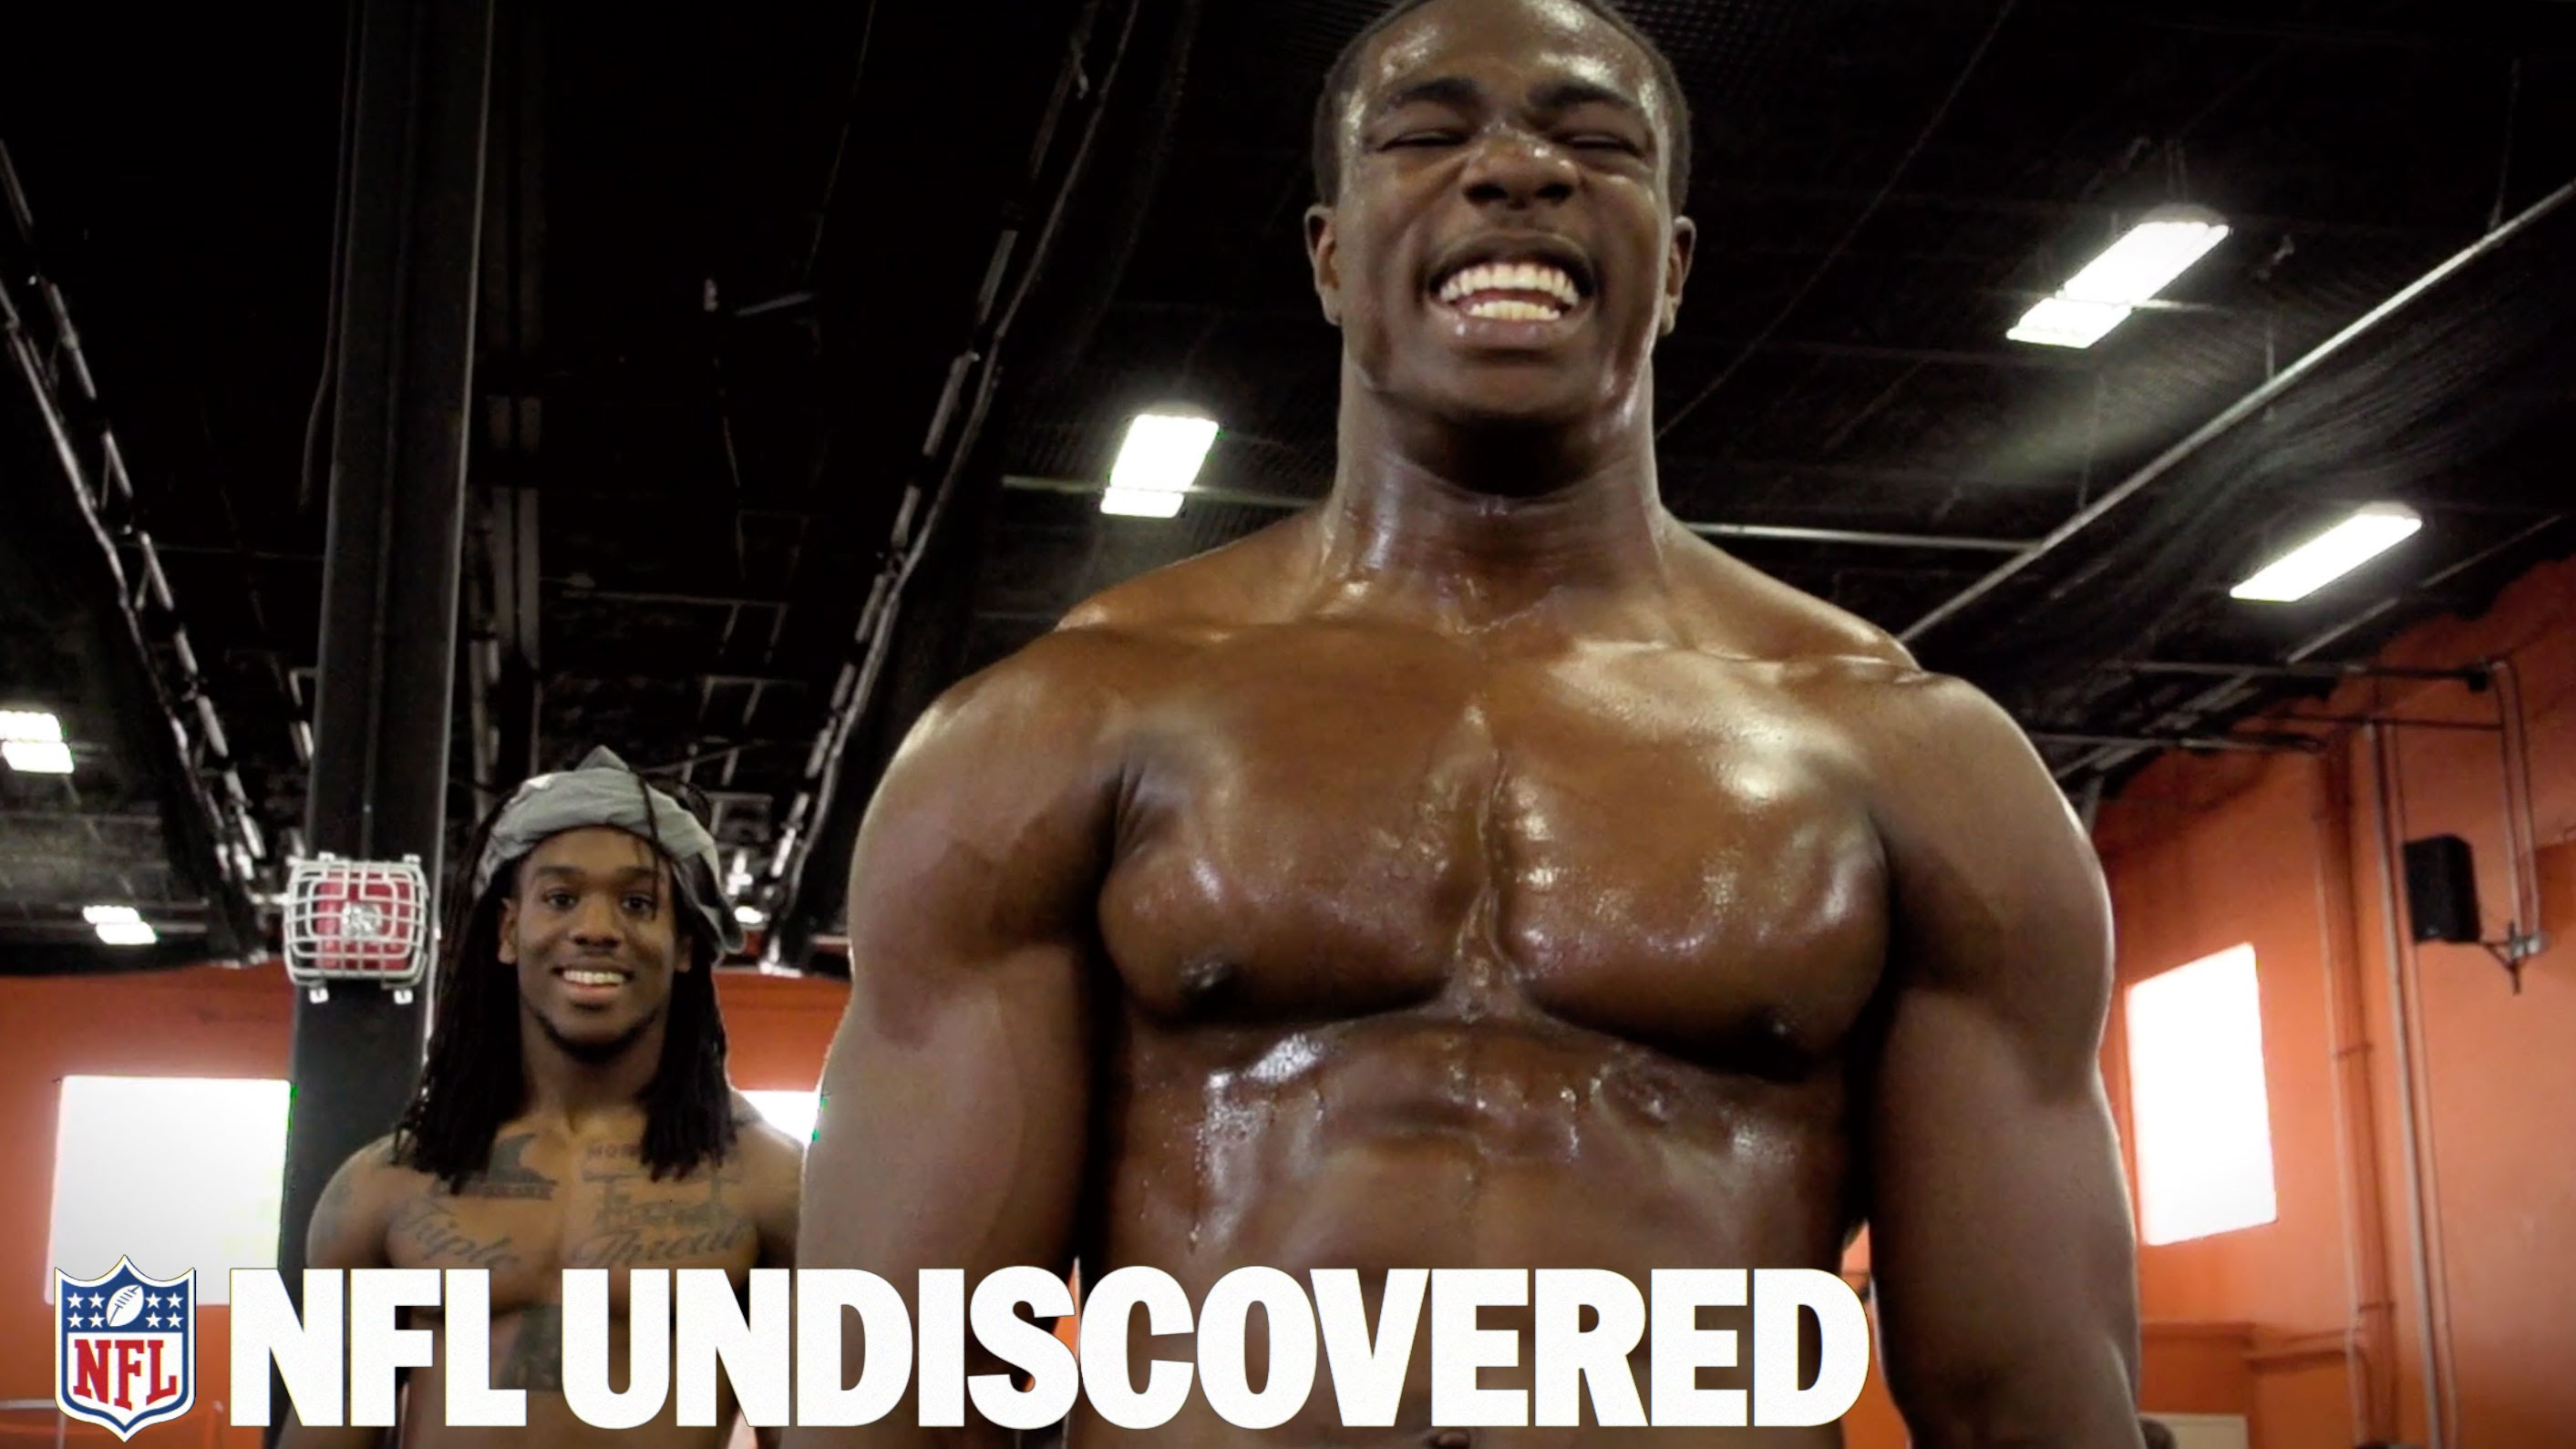 NFL Undiscovered – Episode 2 Recap: Welcome to America